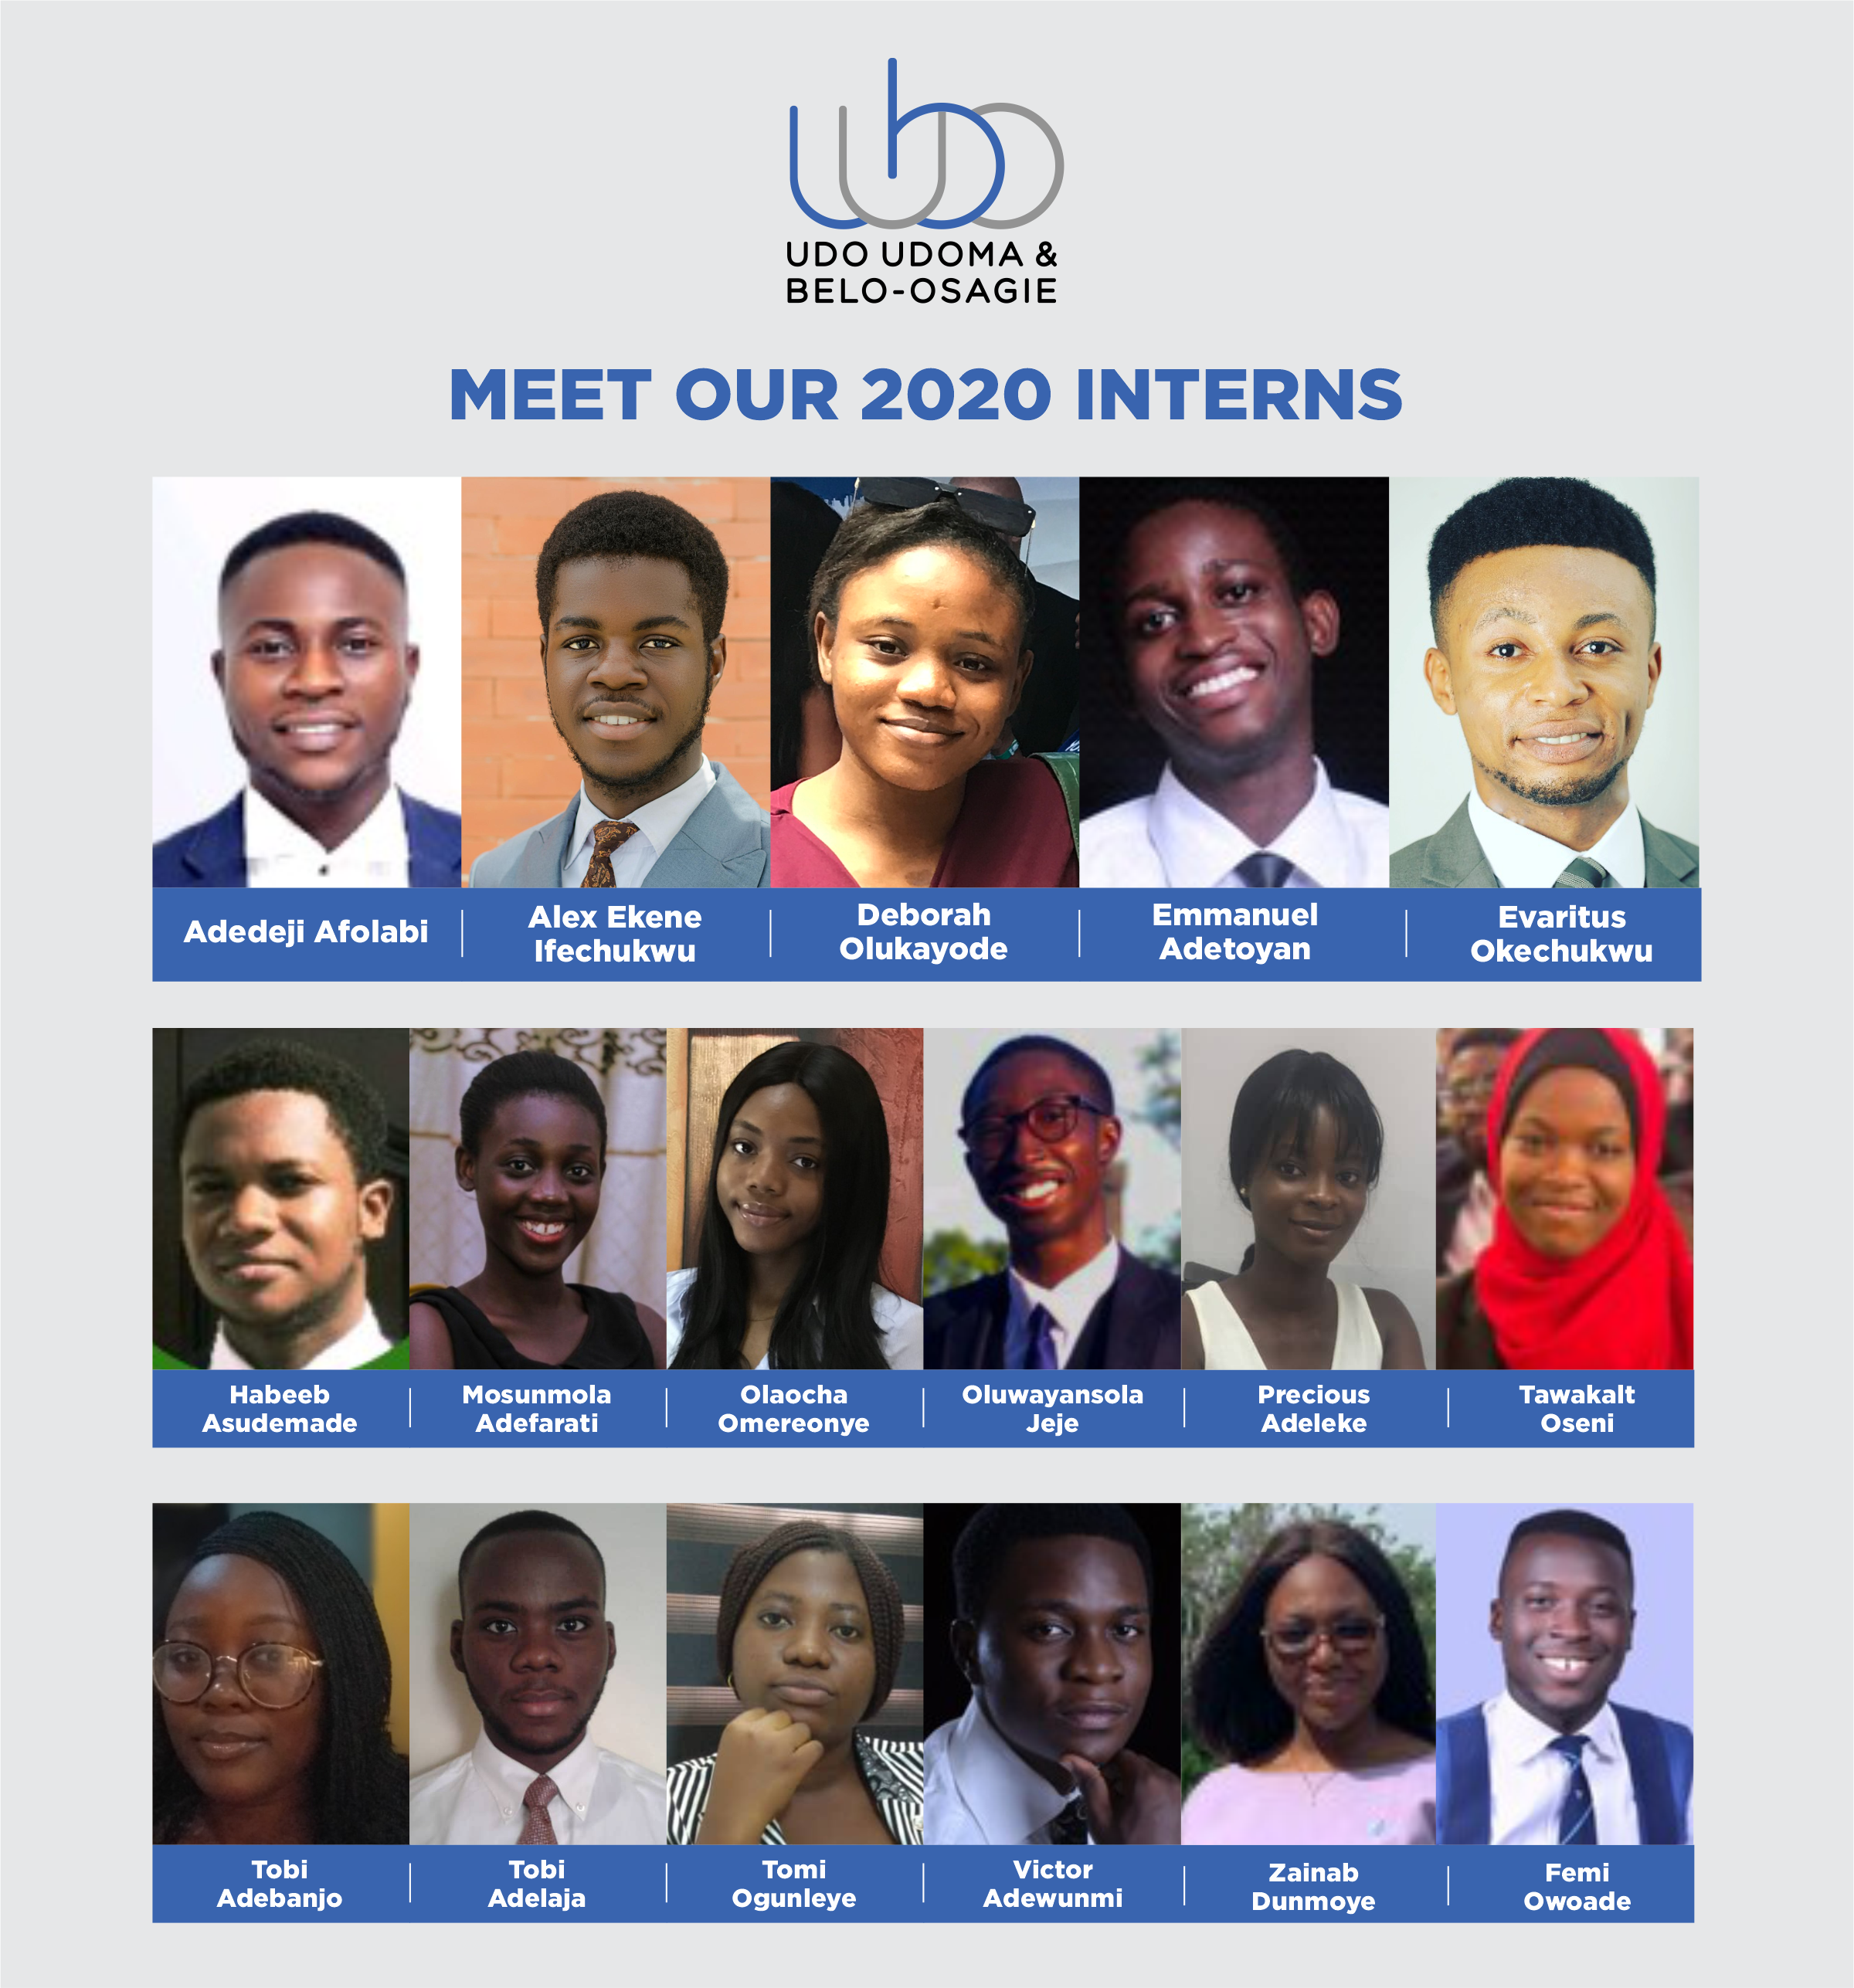 Meet Our 2020 Interns